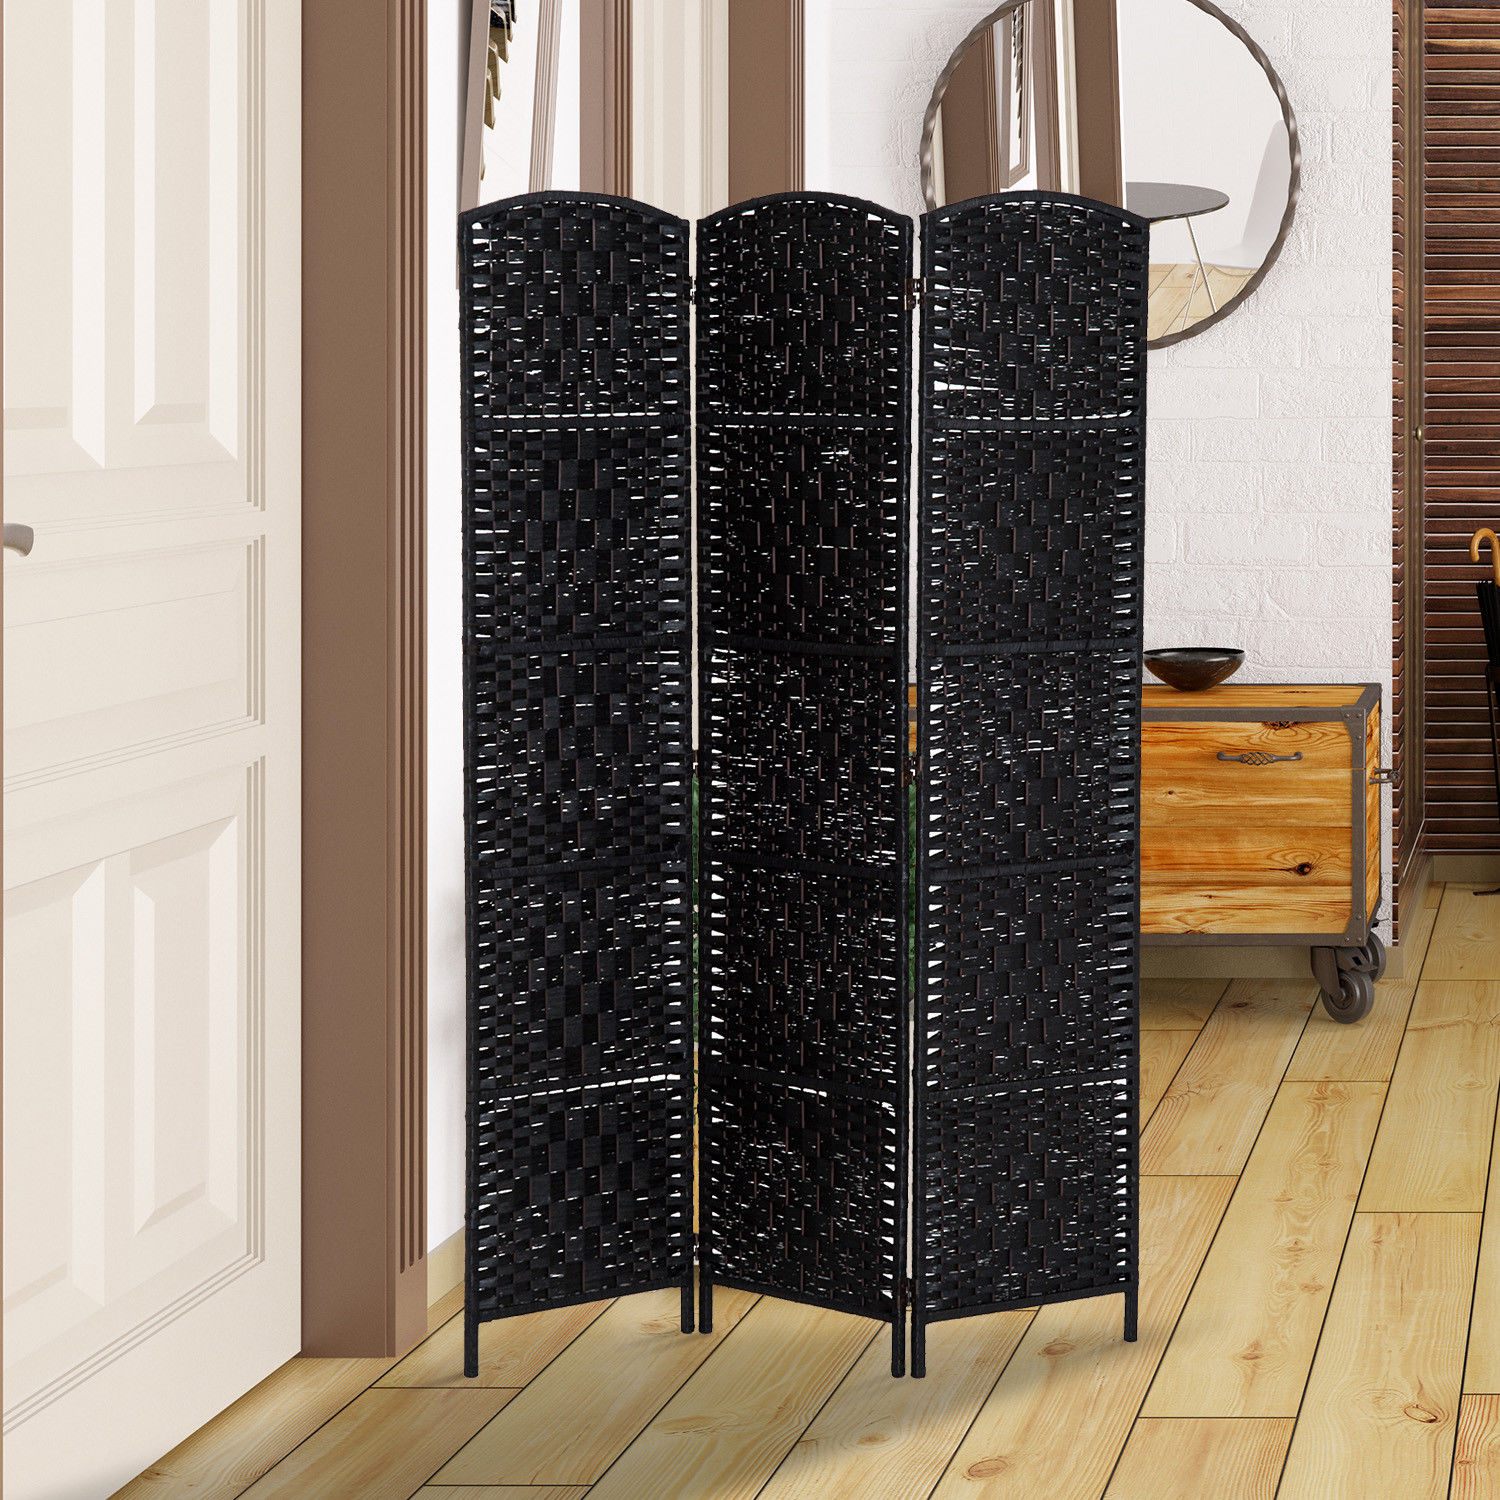 3 panel resin wicker folding room divider indoor privacy screen home